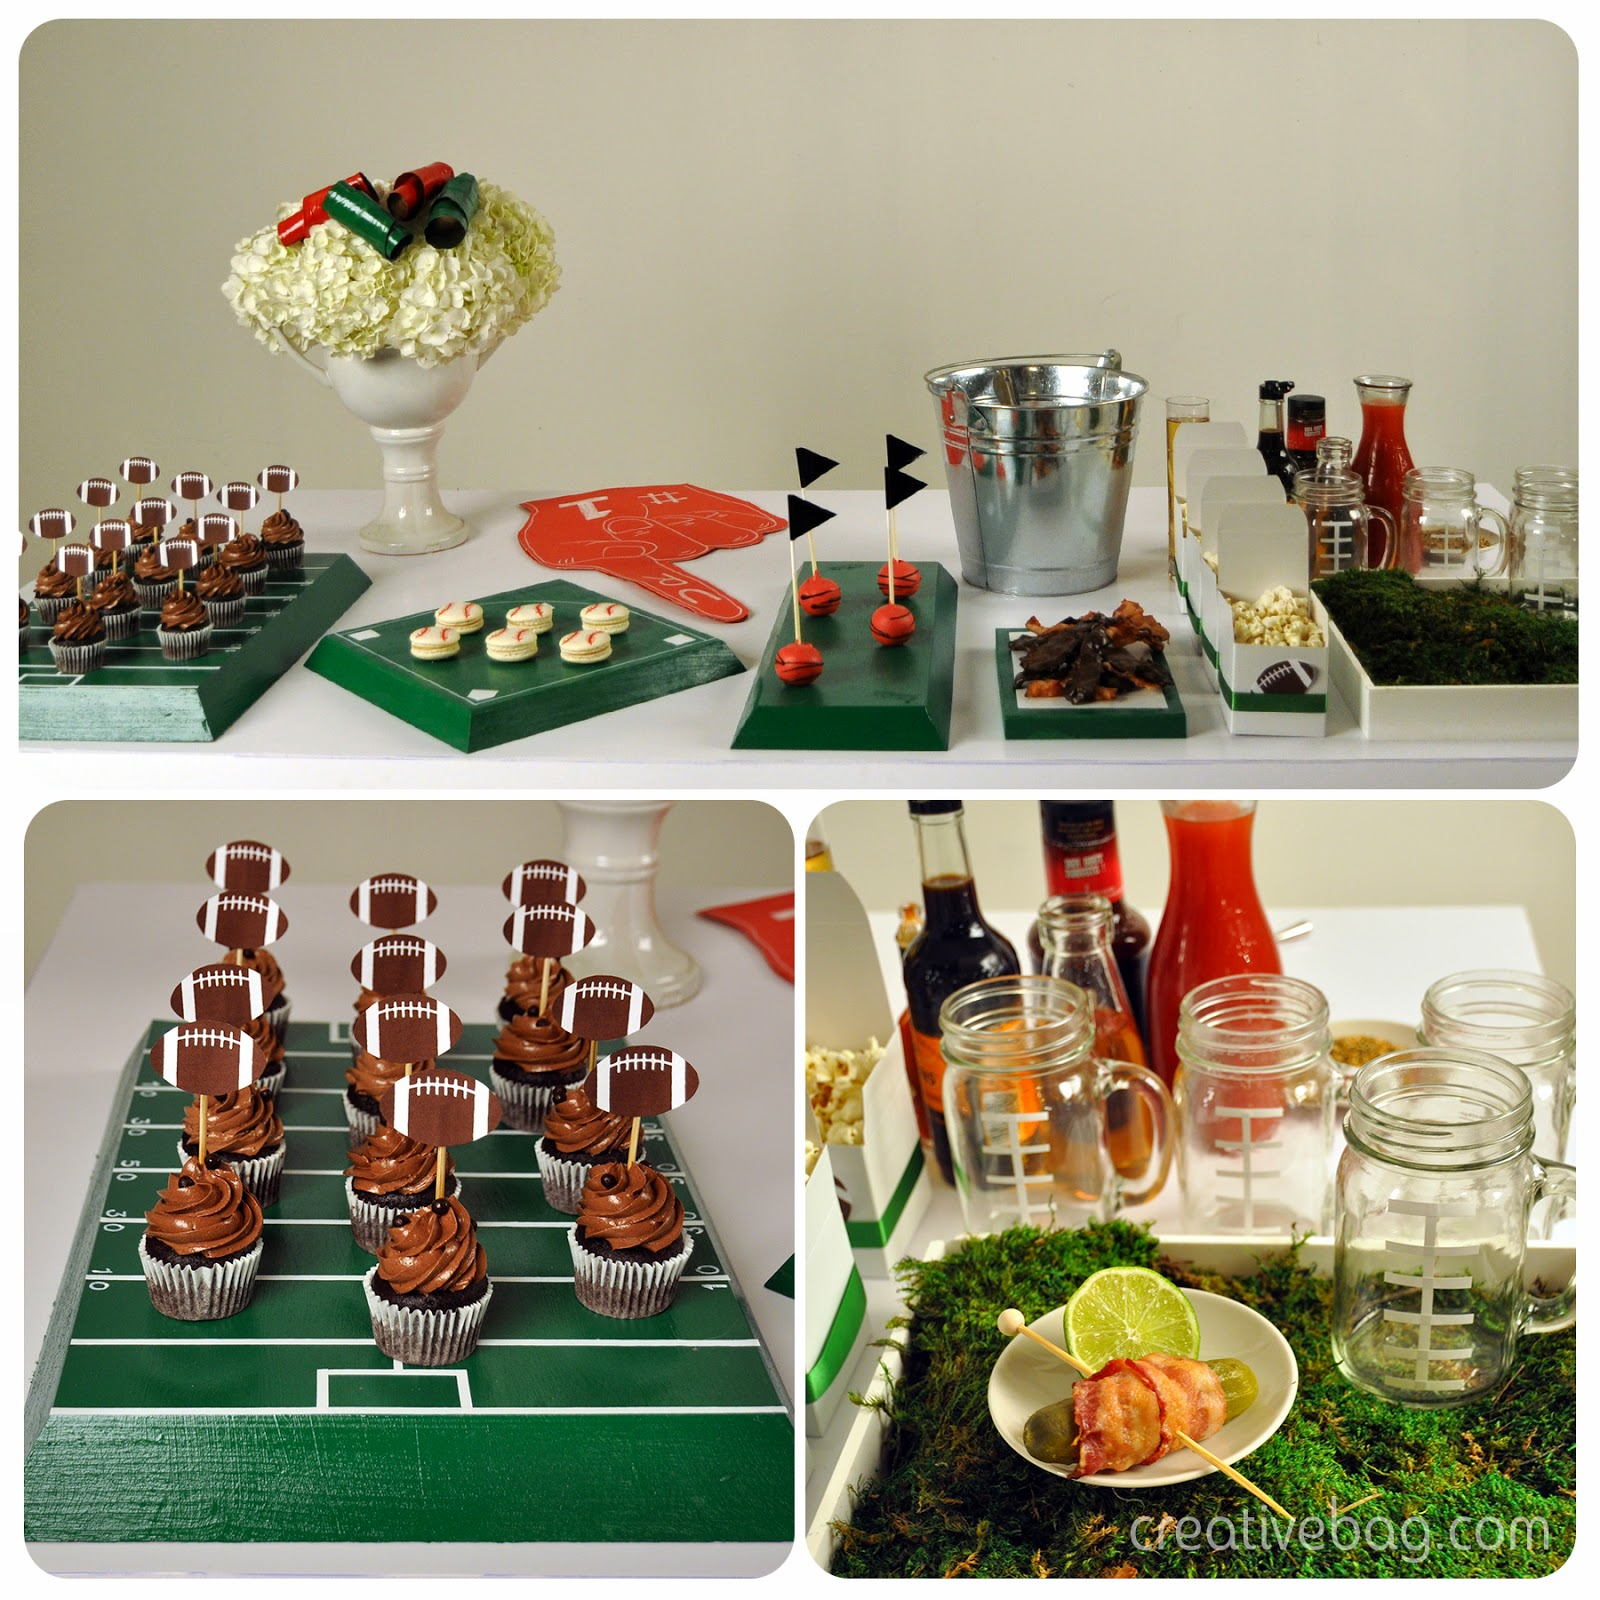 Tailgate party sweet table inspiration | Creative Bag and Petite & Sweet